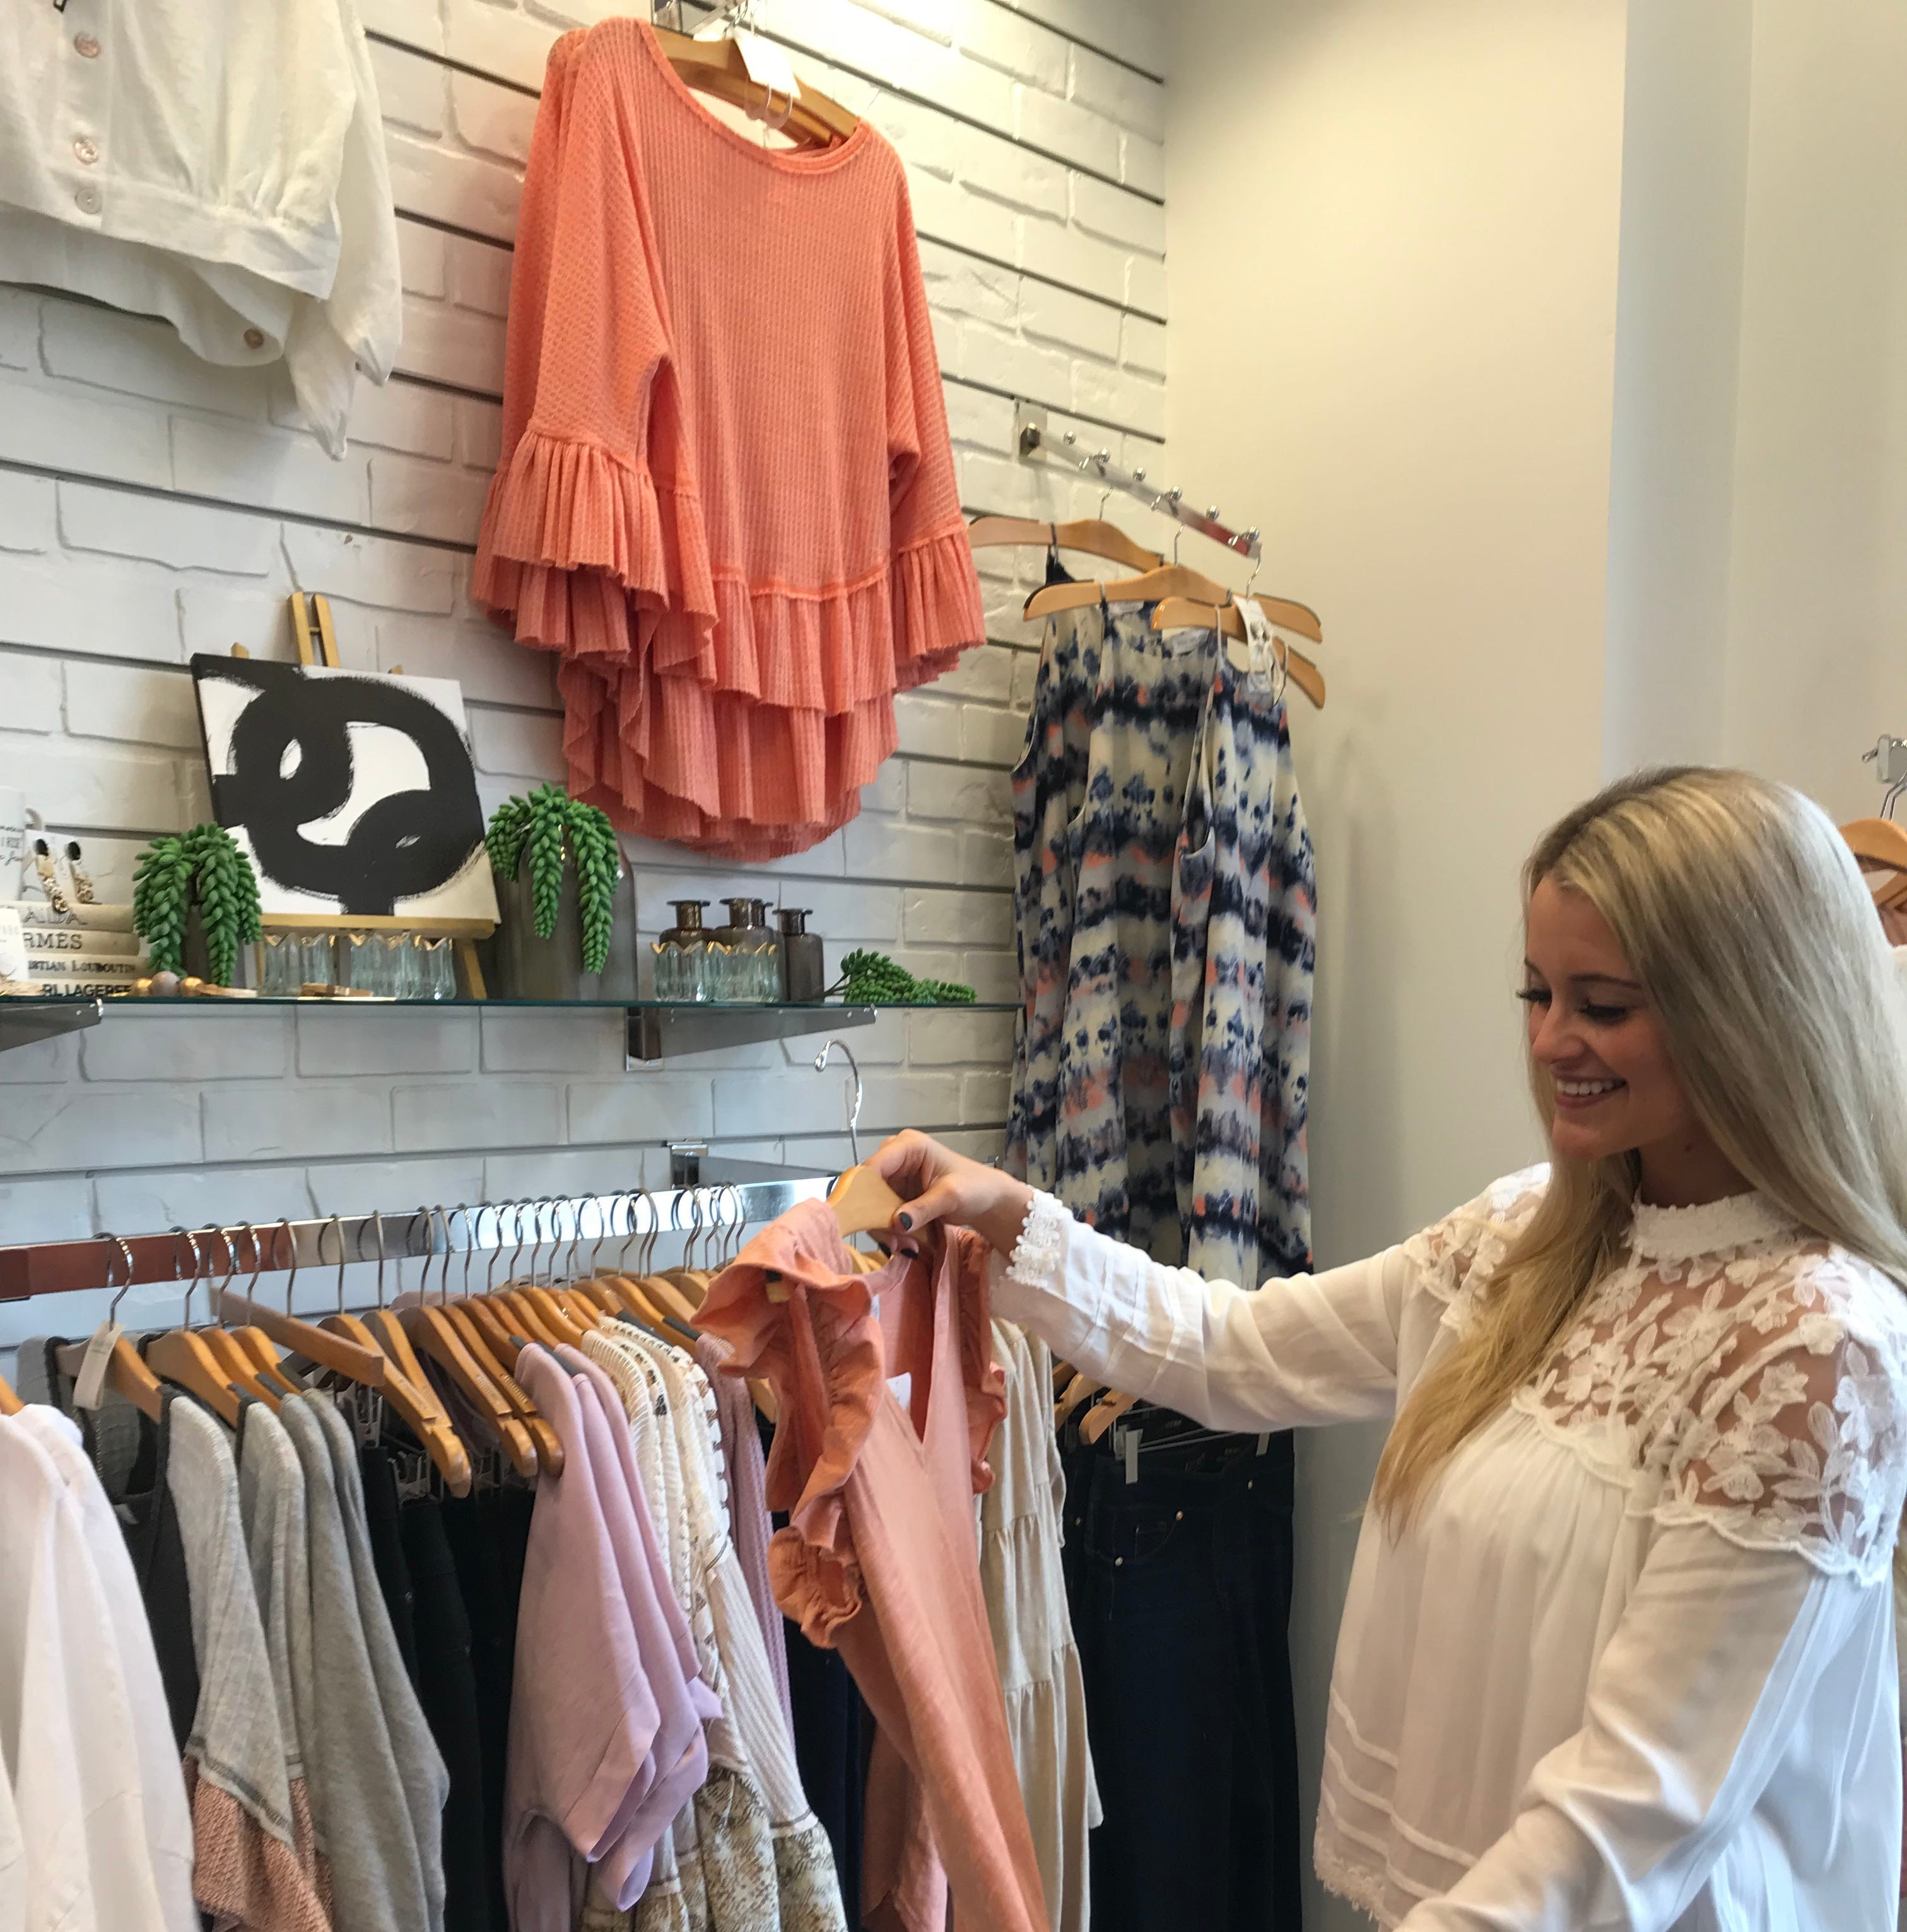 Highland Park by Material Girls: A new women's lifestyle store